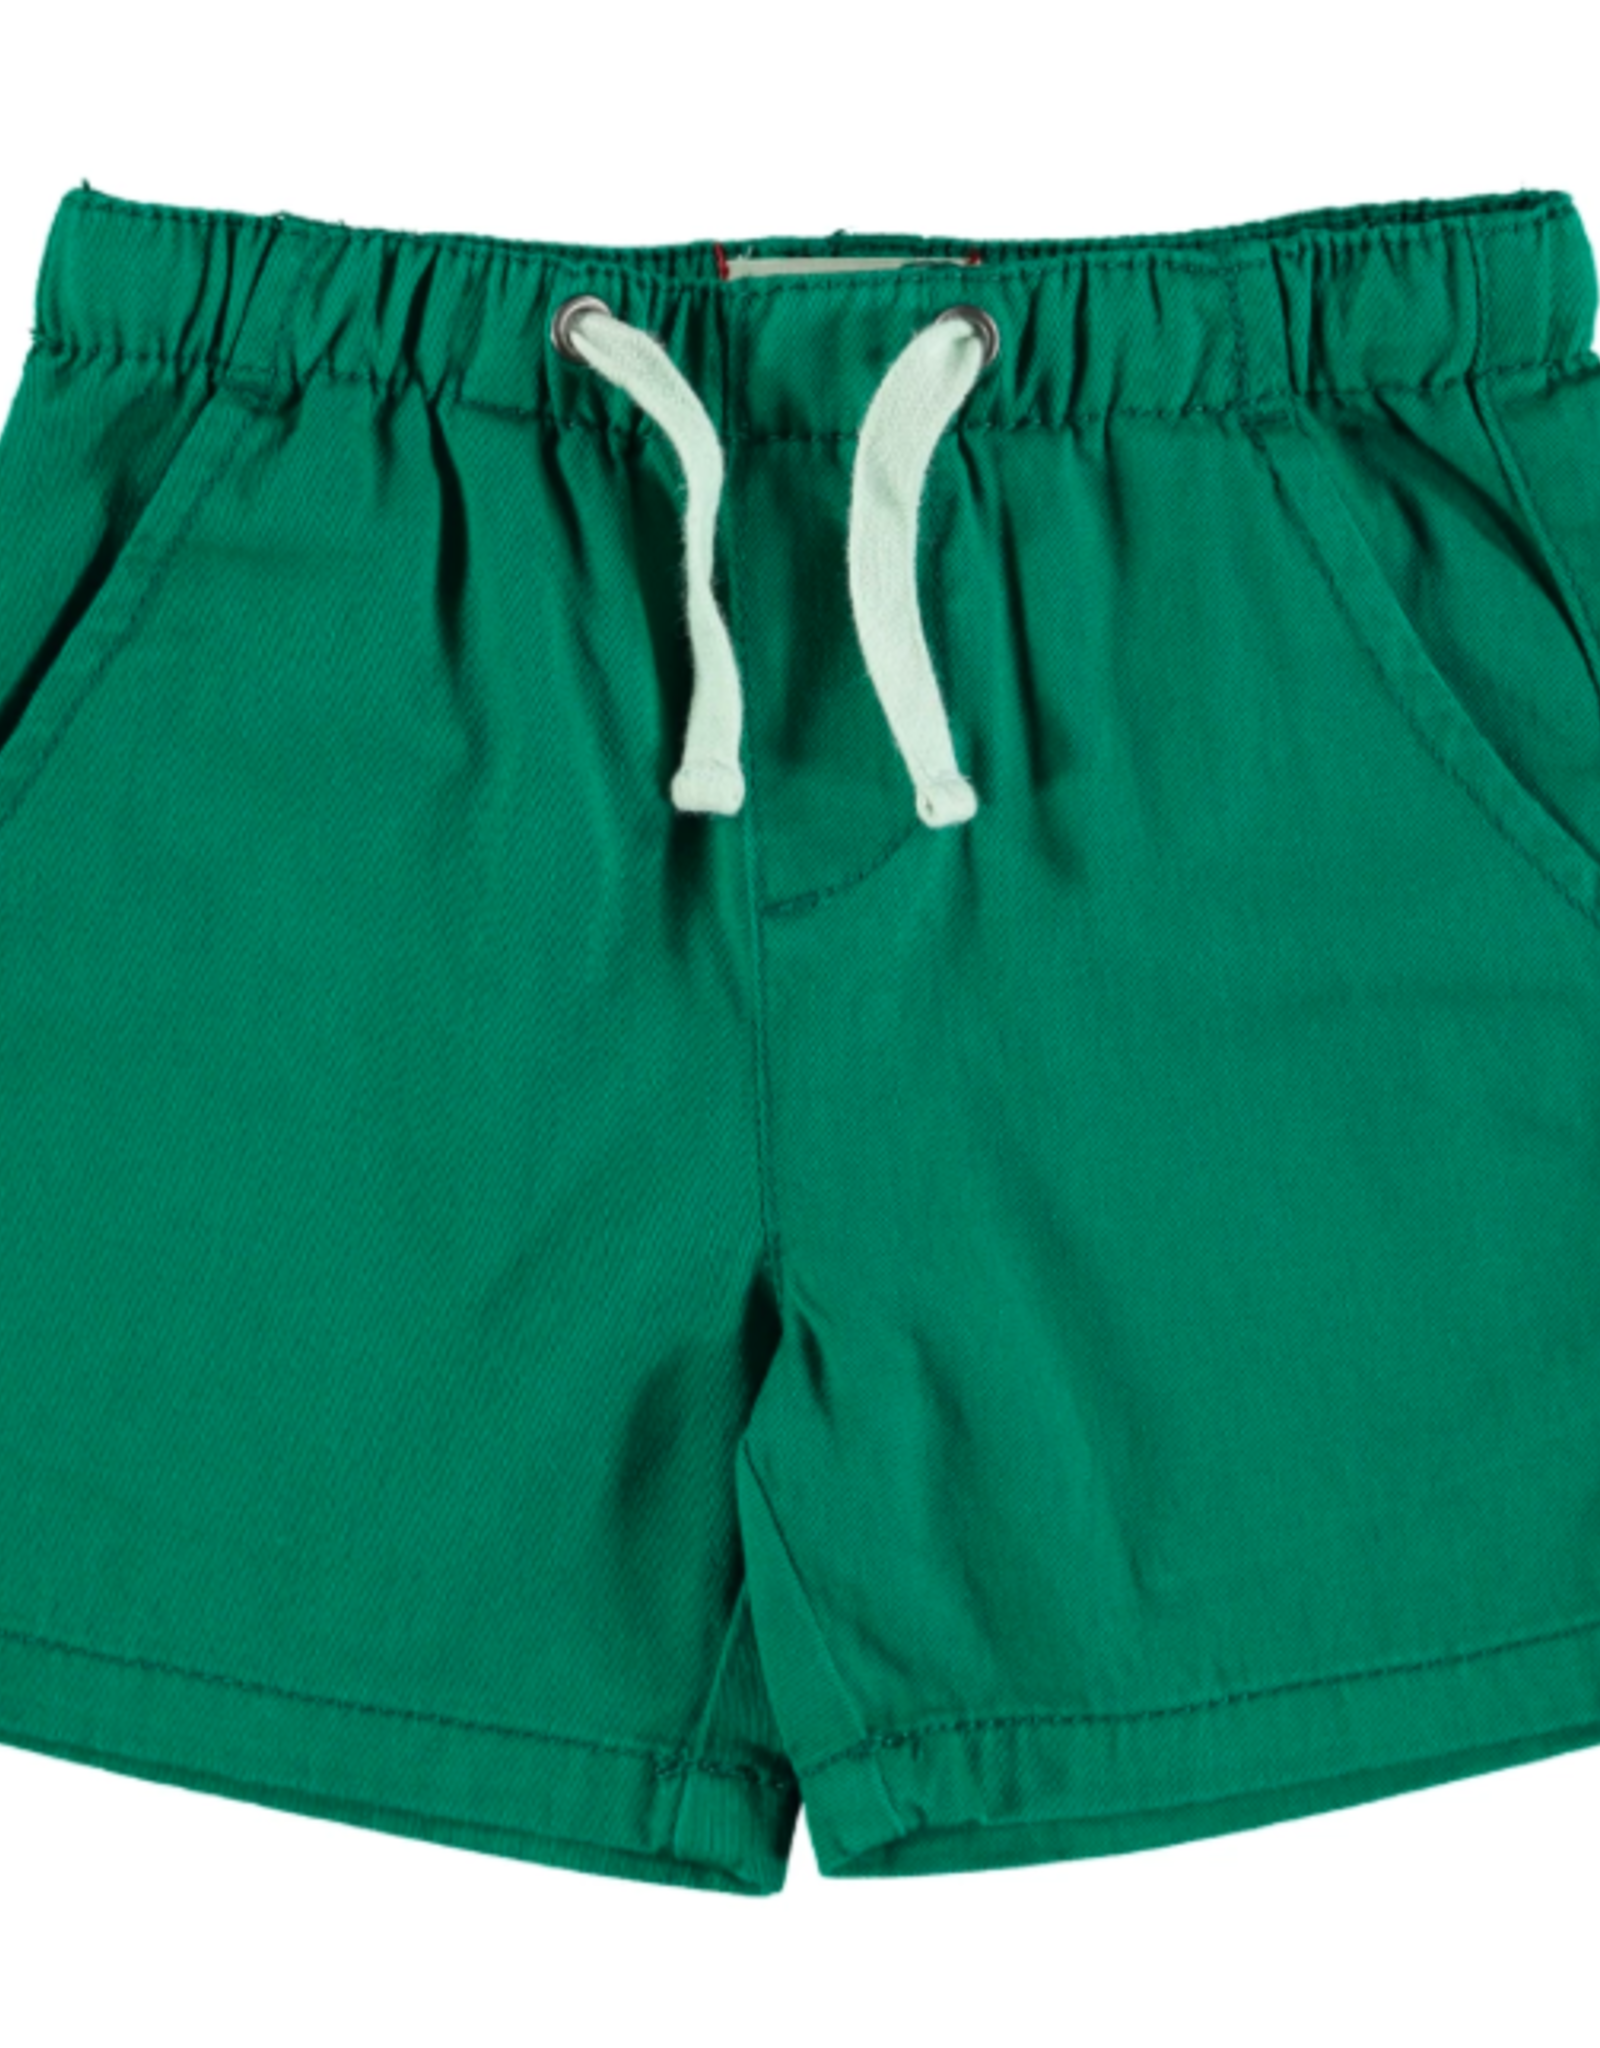 Me & Henry Green Woven Shorts